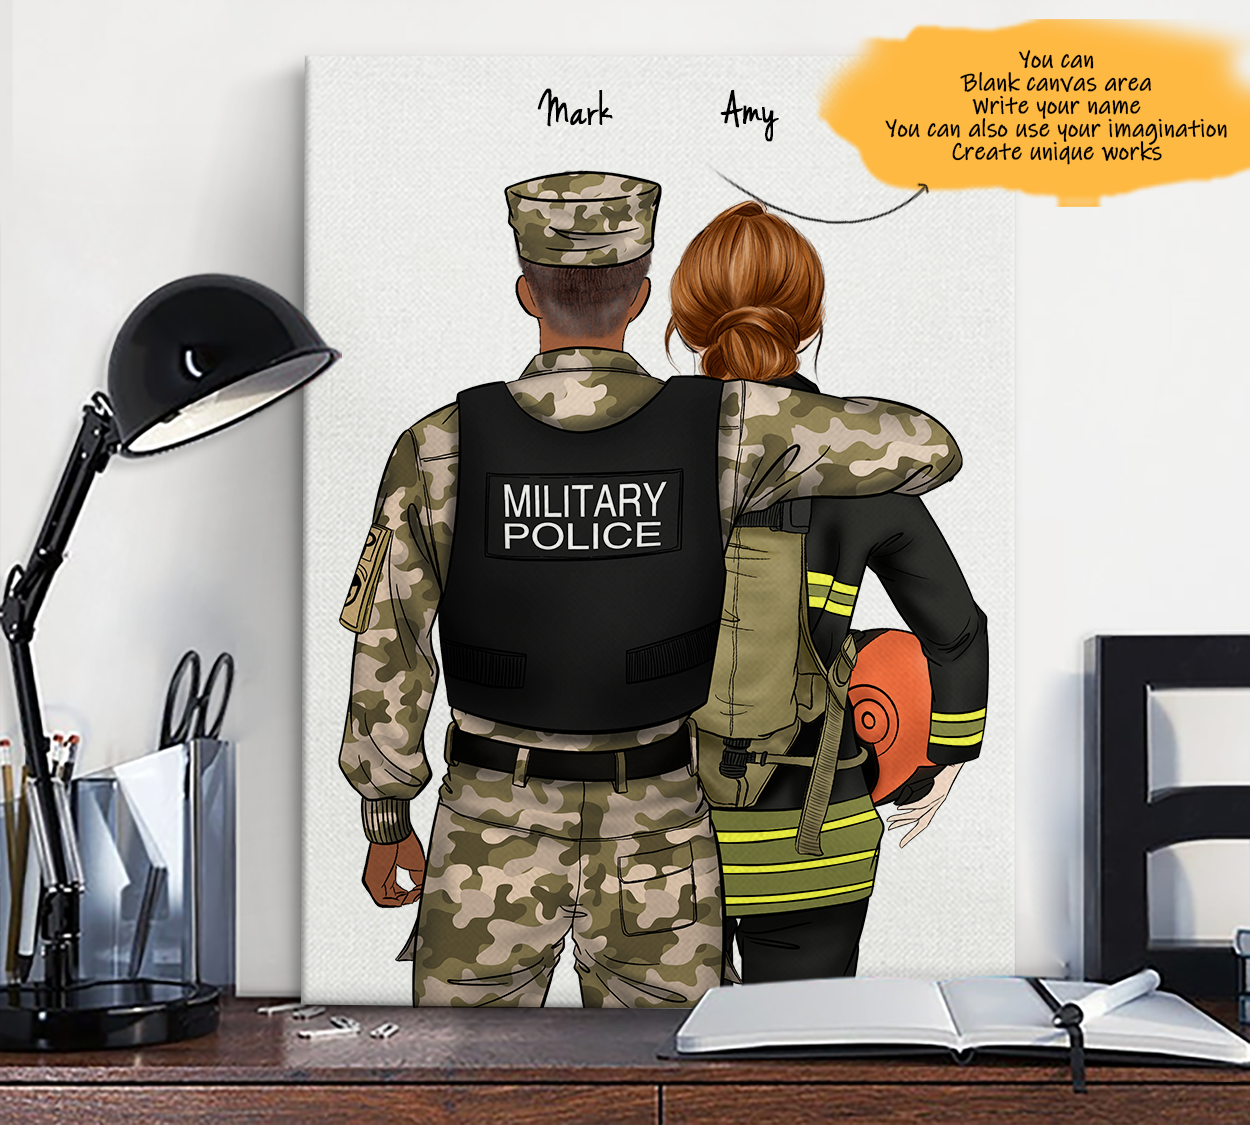 He is My Friend! Hand Draw Custom Canvas-Print Gift Military Police US-Dark&Firefighter